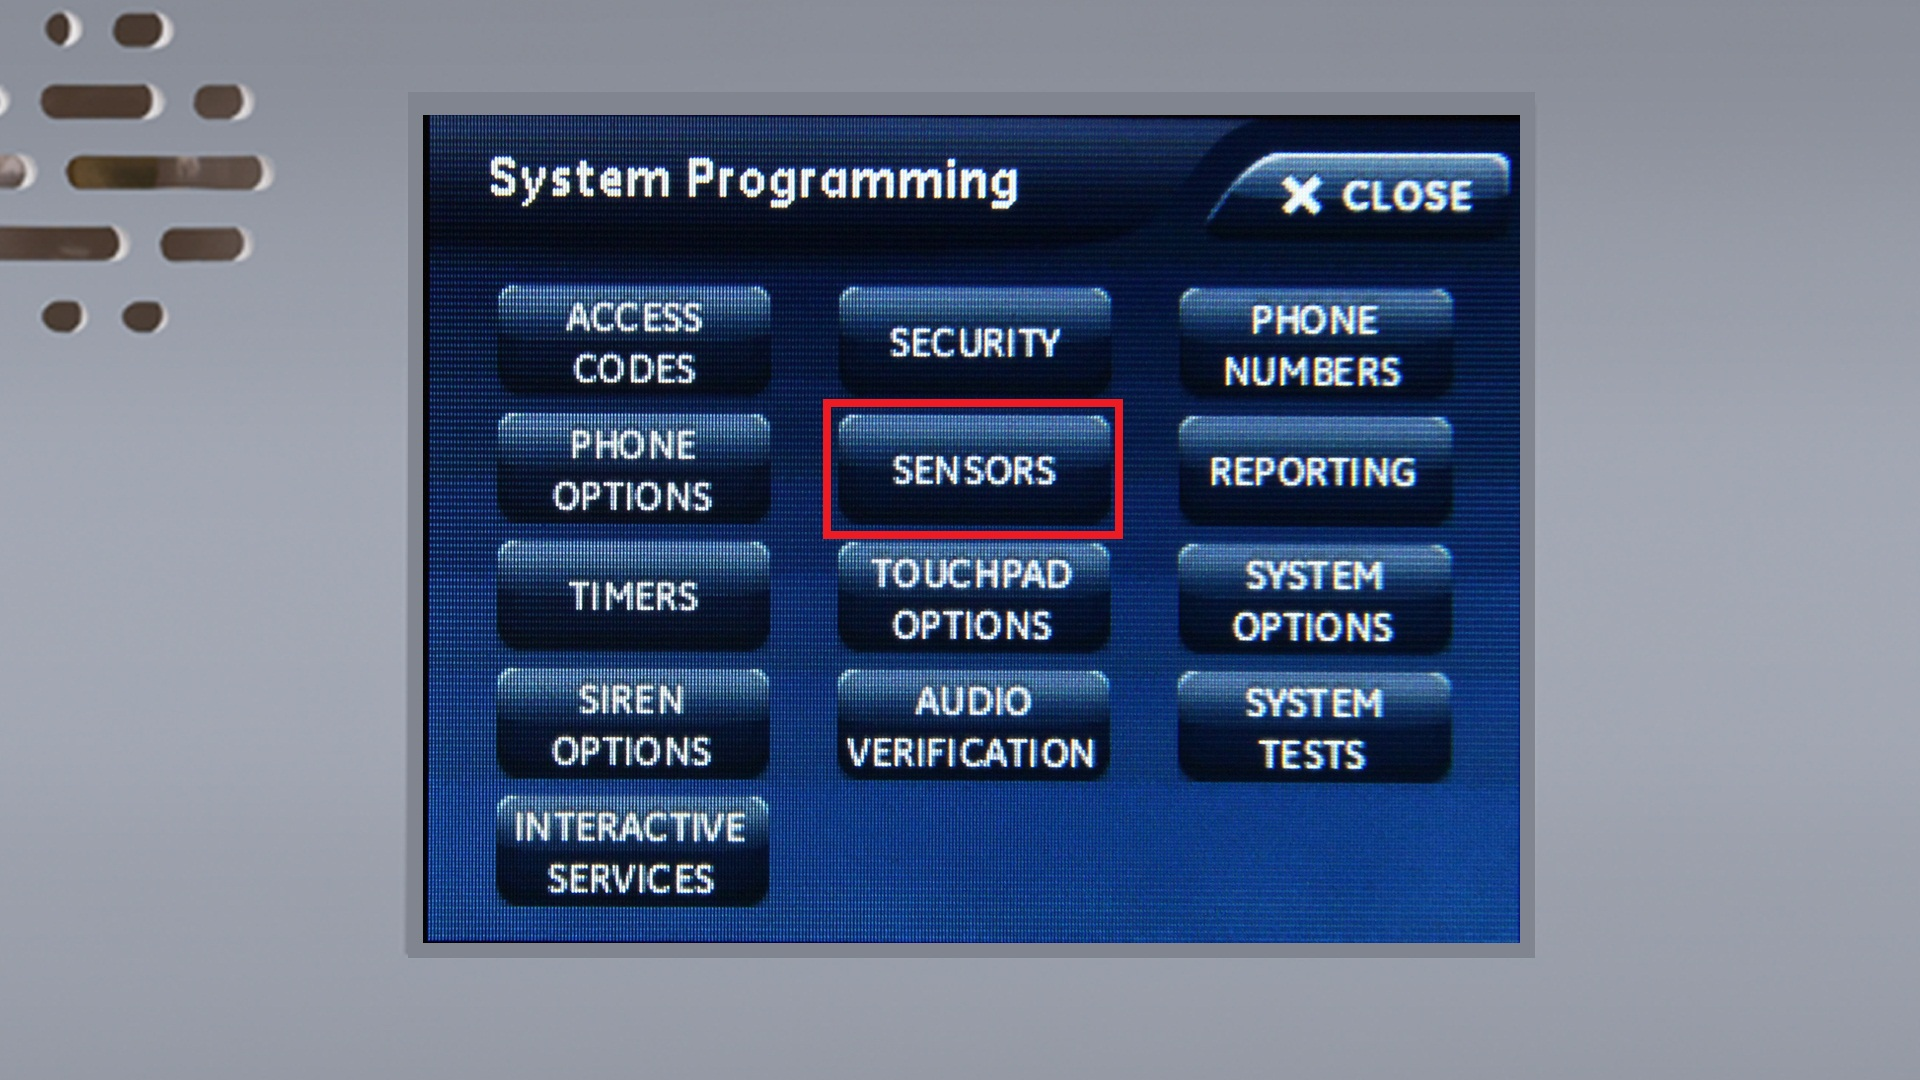 xtis-system-programming_red_sq.jpg